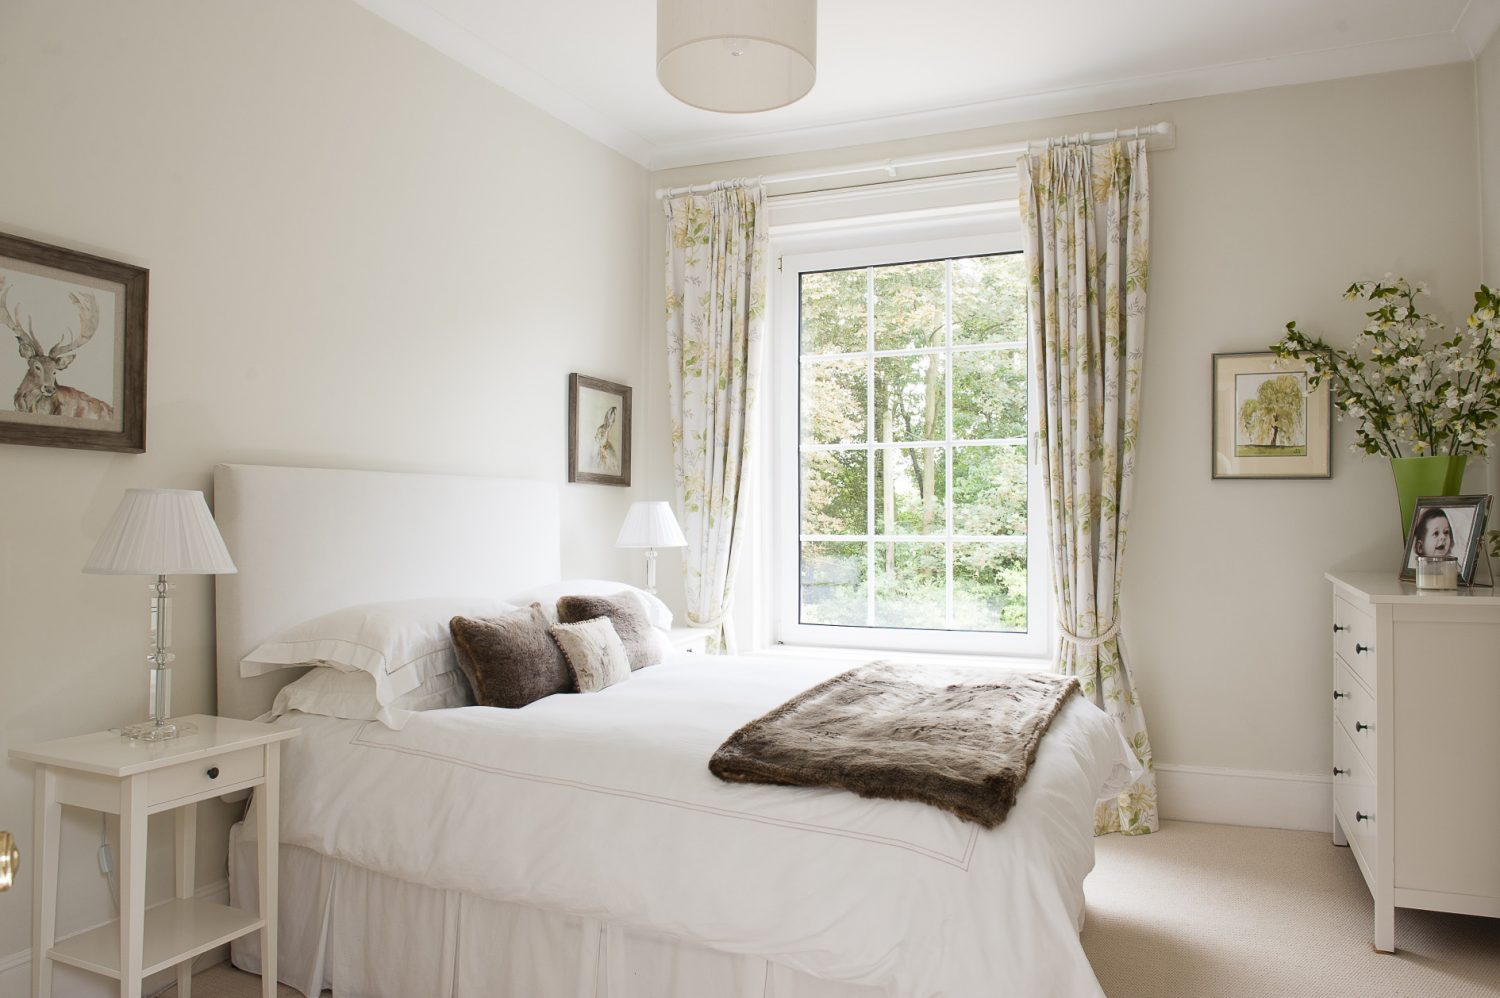 A guest room, painted in F&B's James White, features honeysuckle print curtains, limed wood furniture from The Vintage Home Co in Westerham and delicate drawings and paintings of landscapes and woodland animals